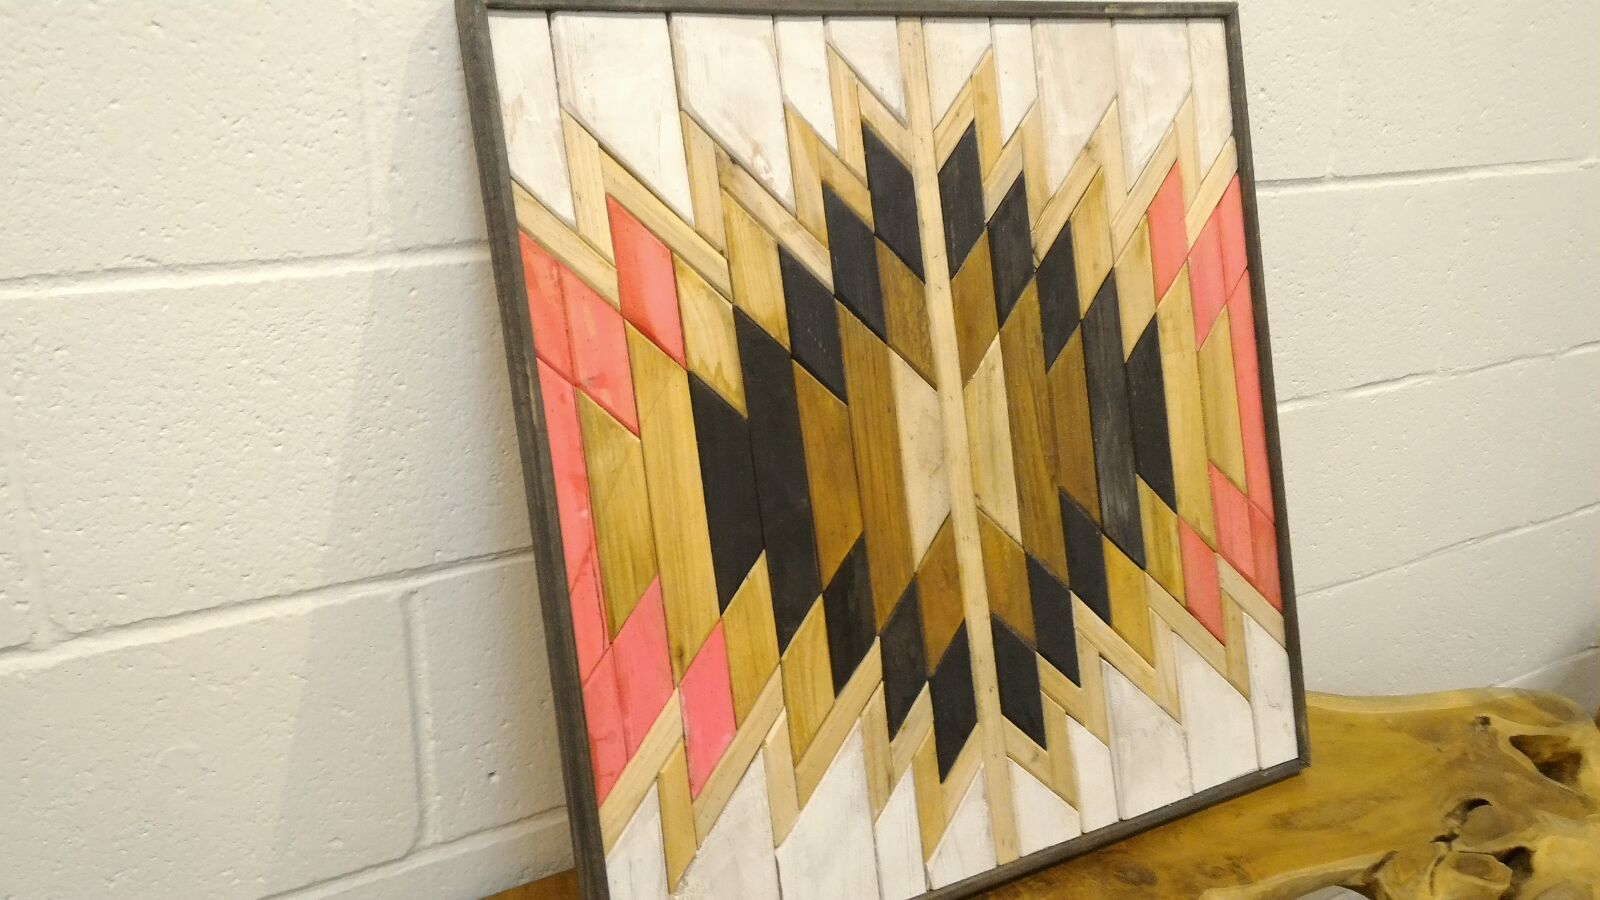 Handcrafted Pine Wood Wall Art